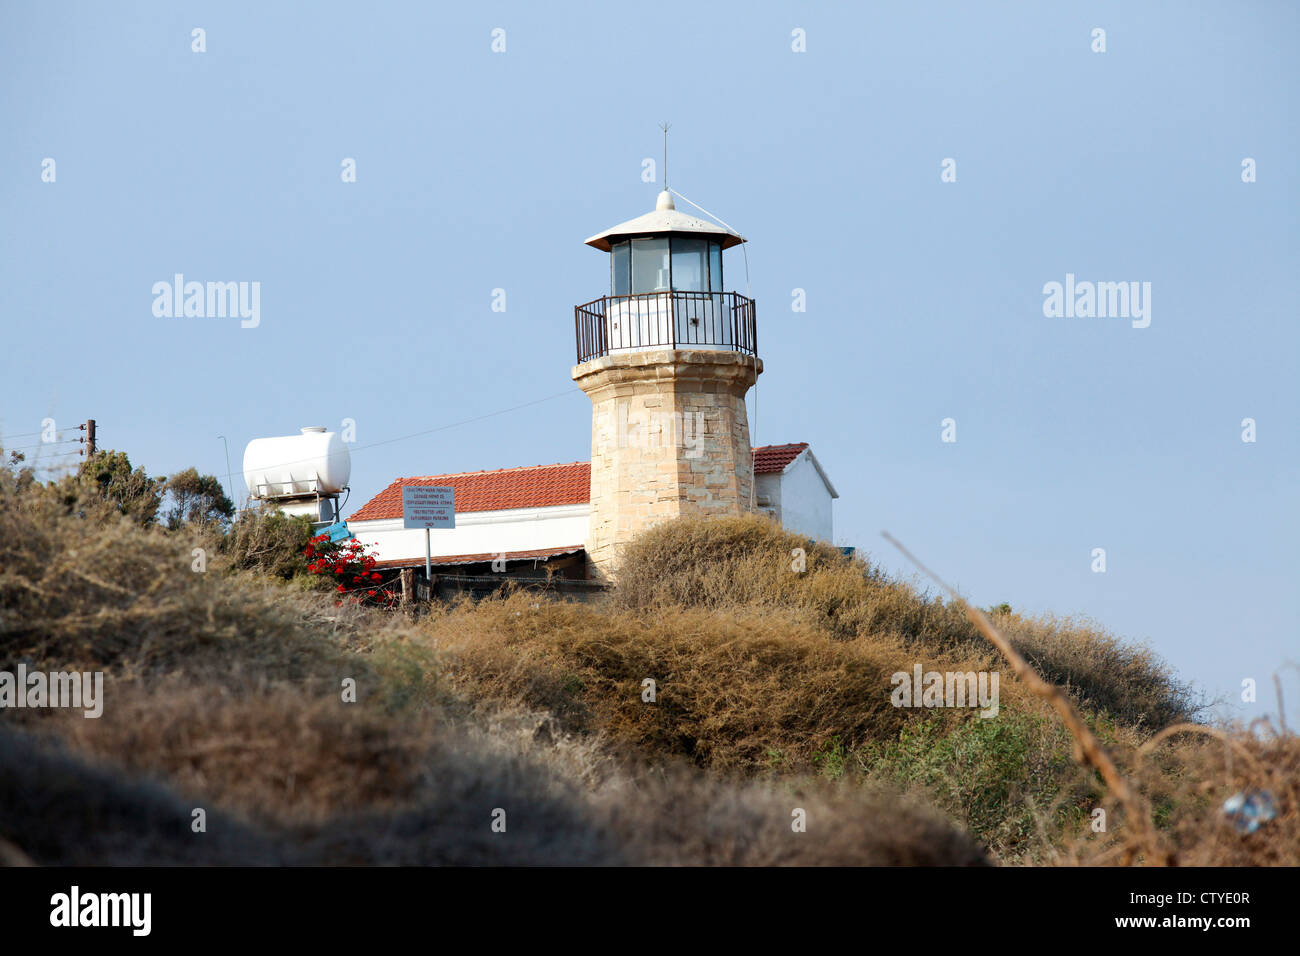 Meneou Lighthouse at Cape Kiti, Cyprus - Stock Image